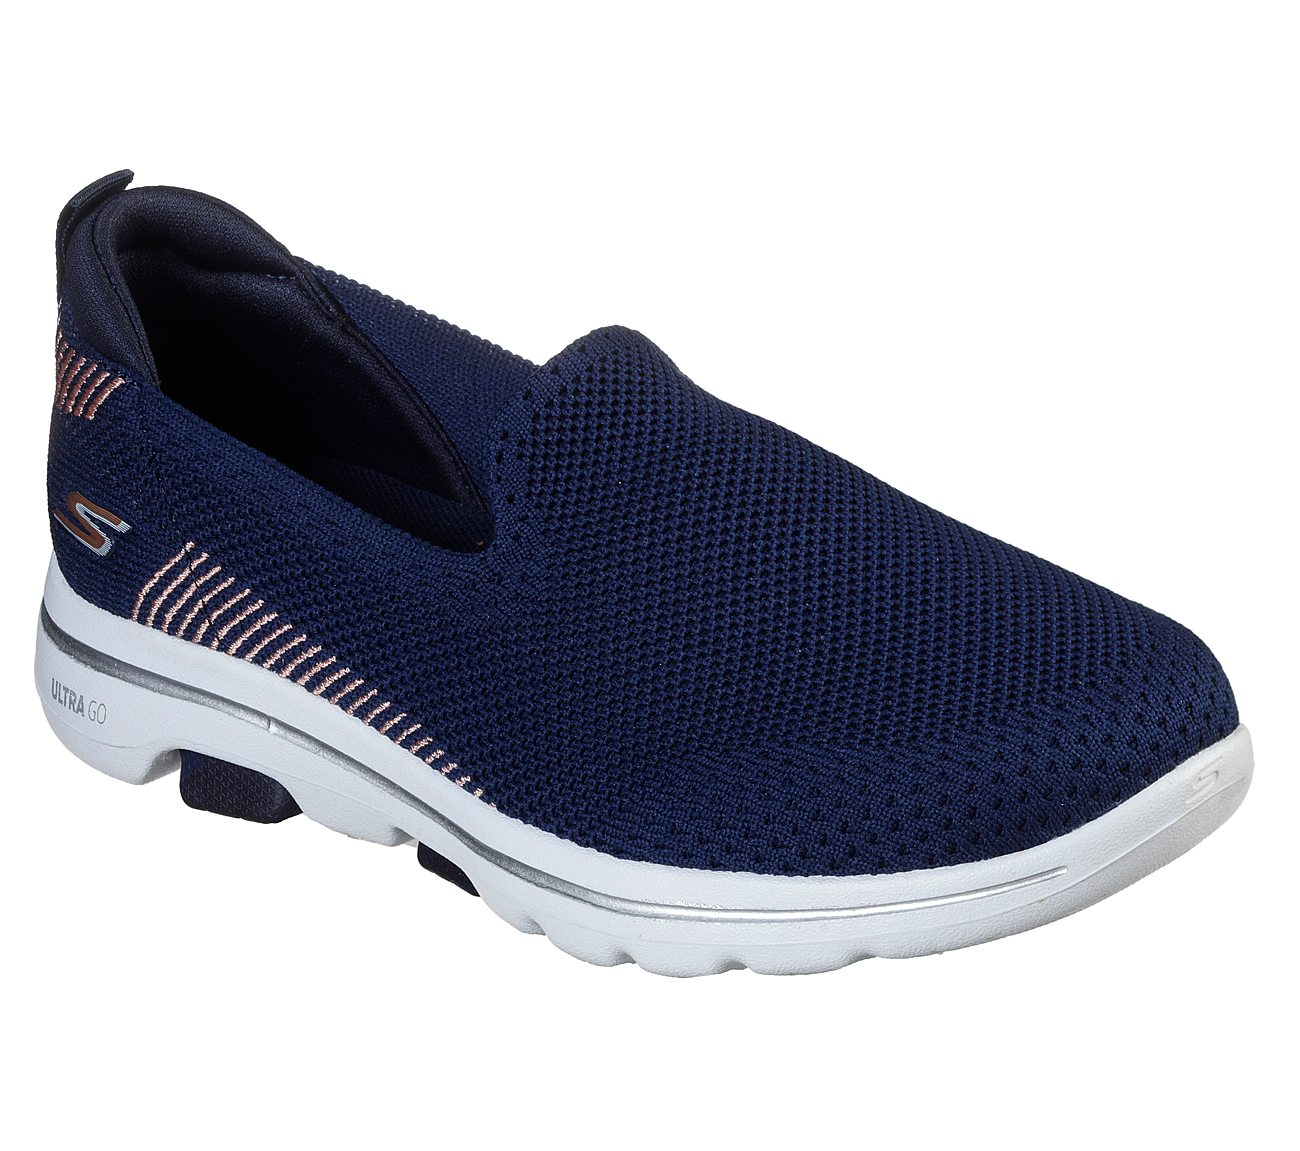 skechers damen slipper